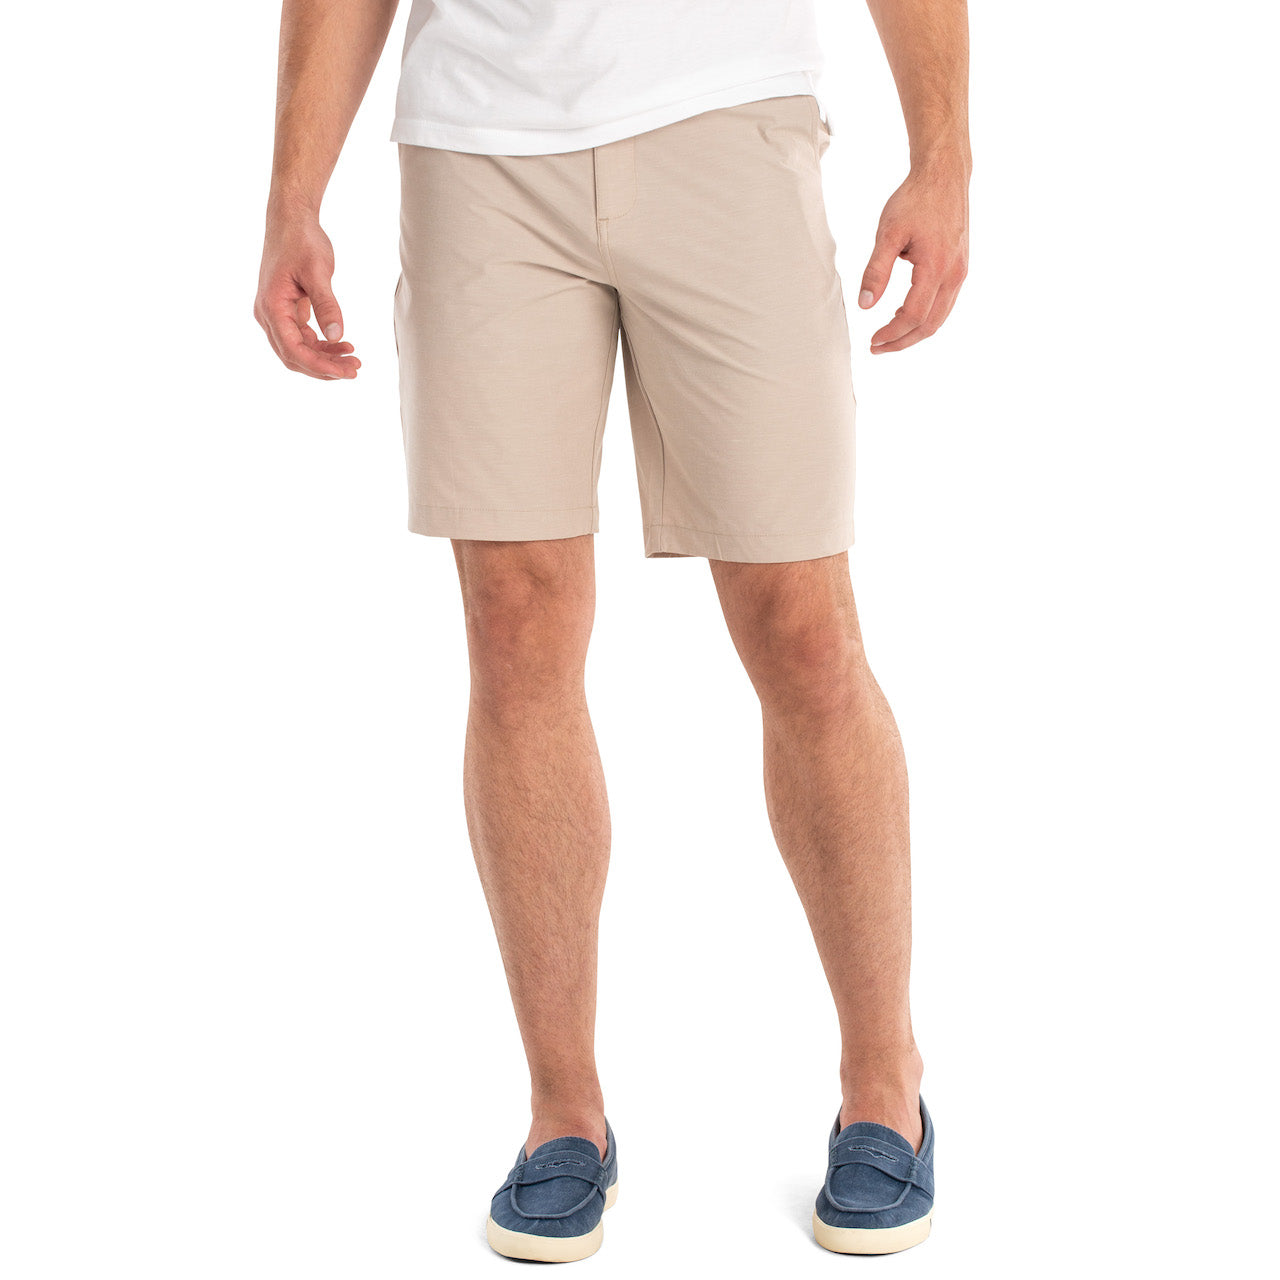 Wyatt Prep-Formance Shorts in Quarry in Stone